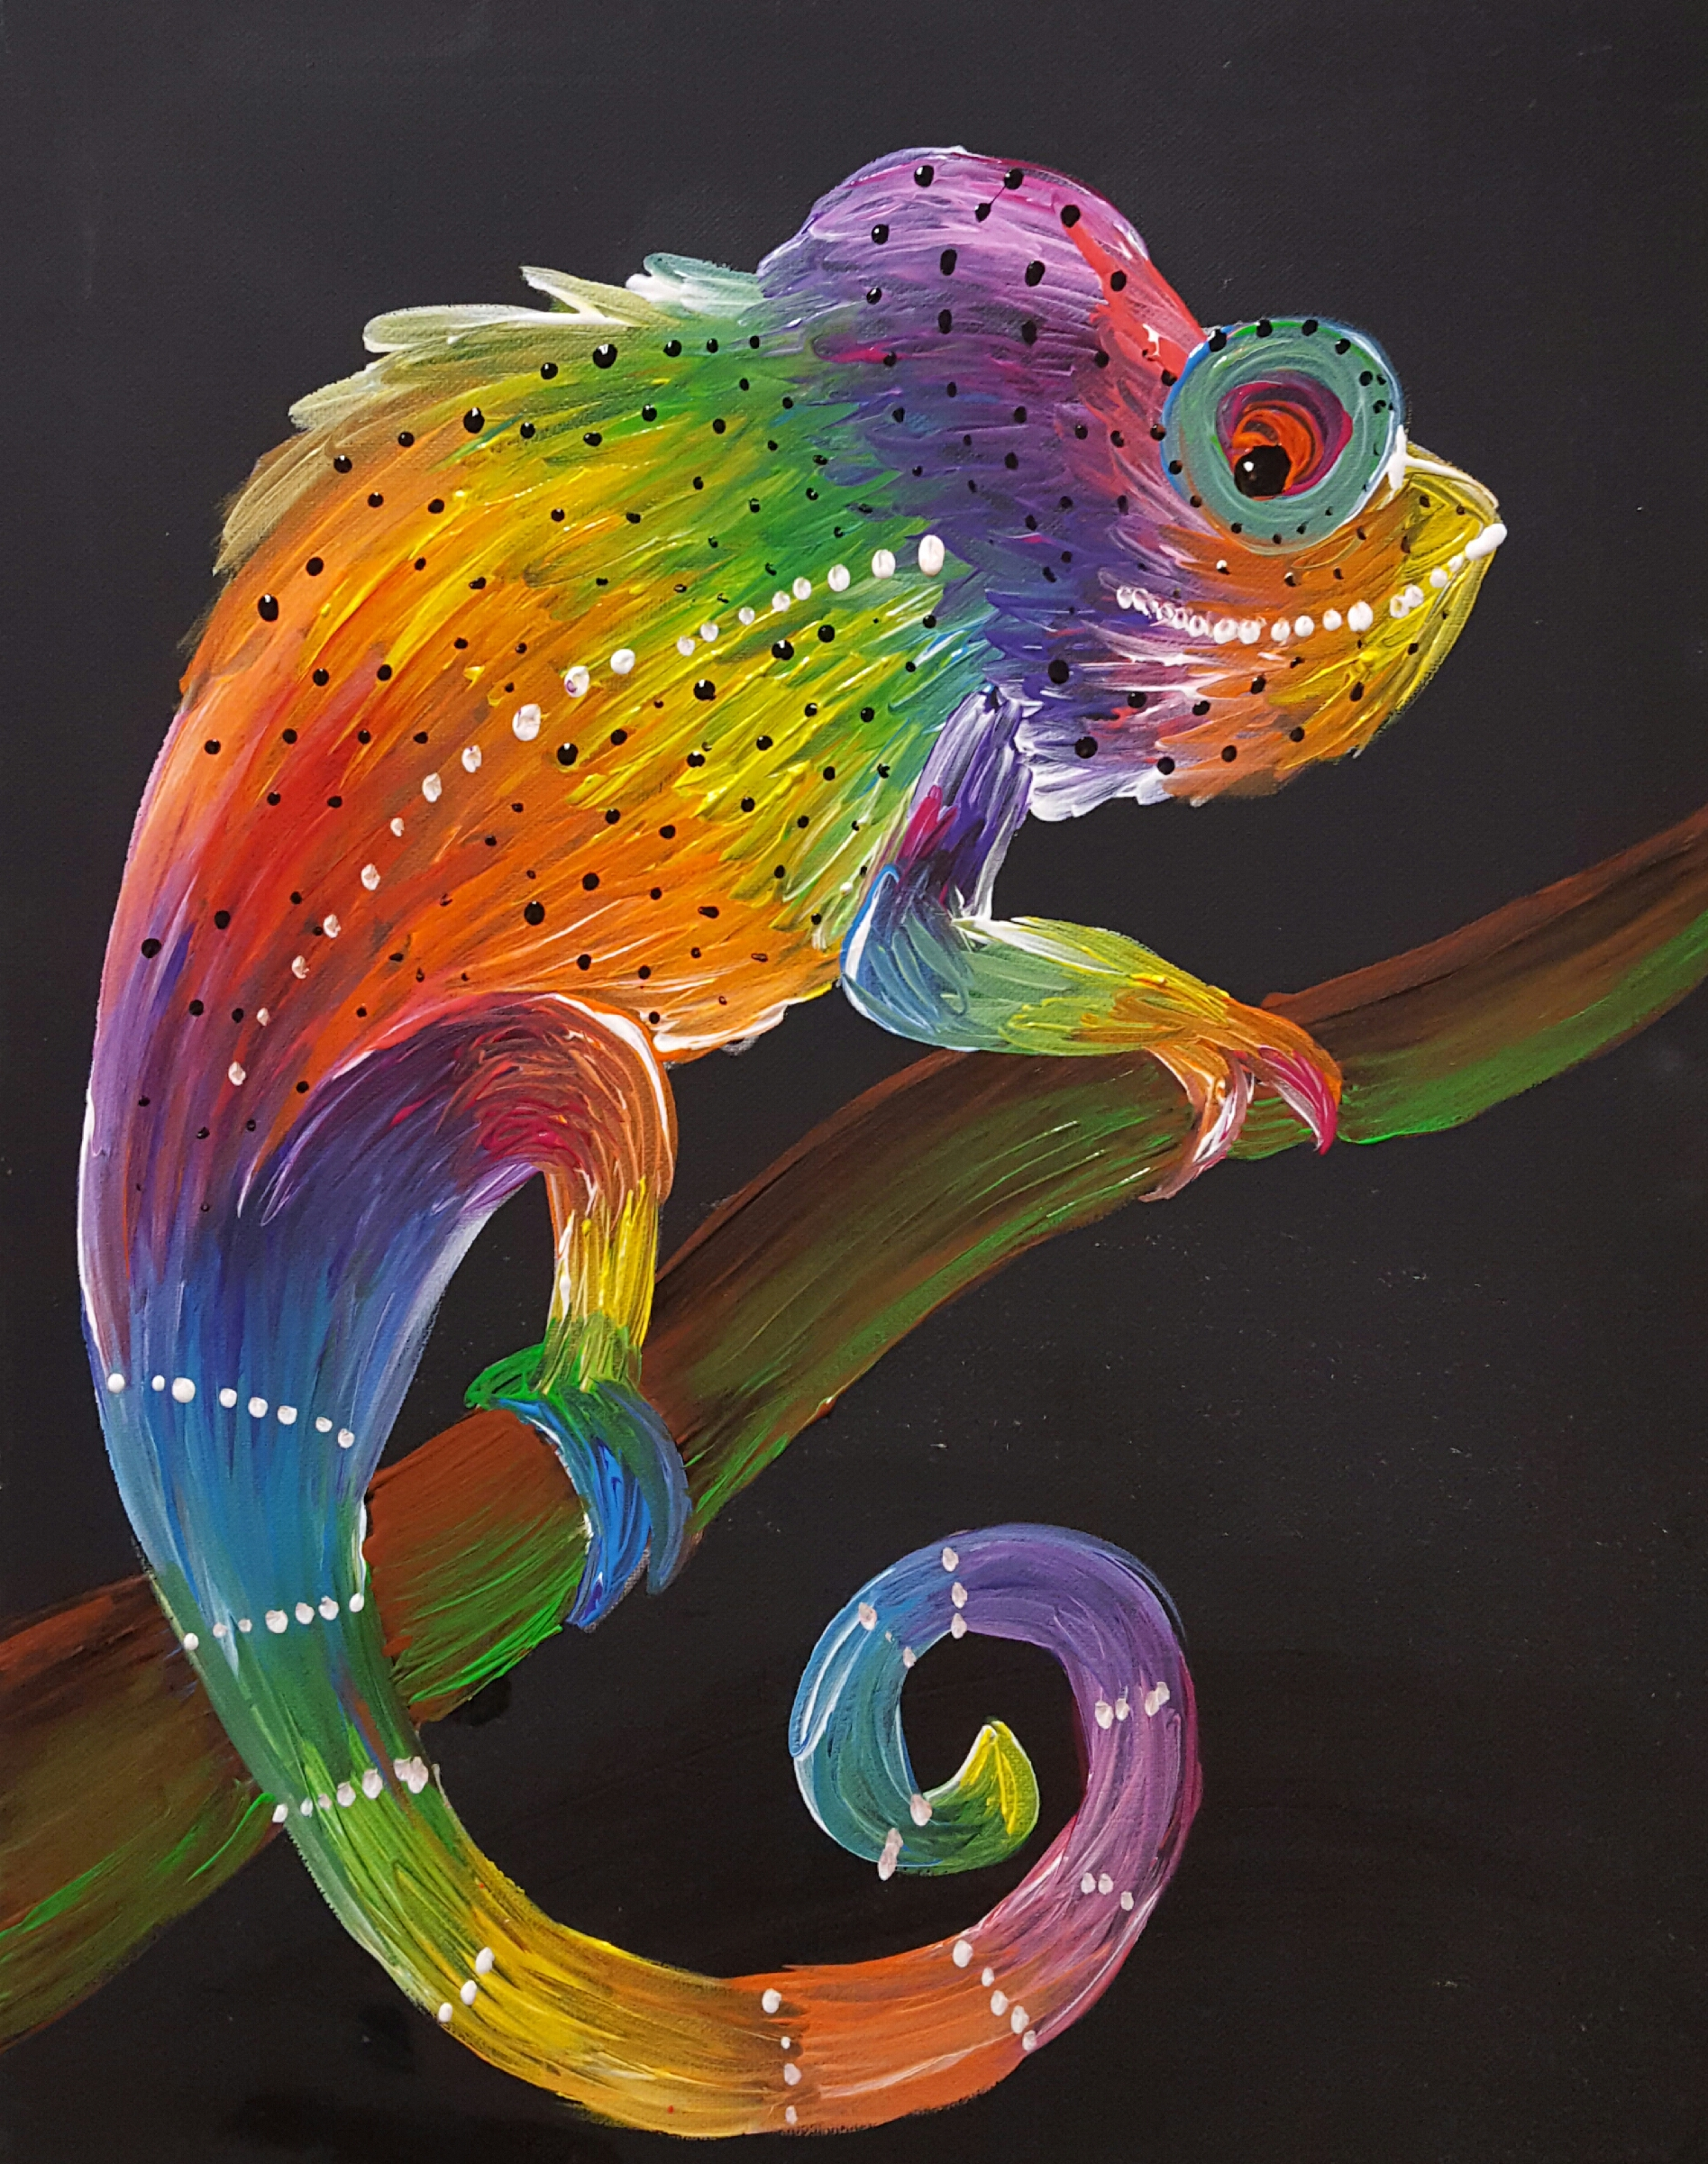 Chameleon- (9 years old and up) 2 hours